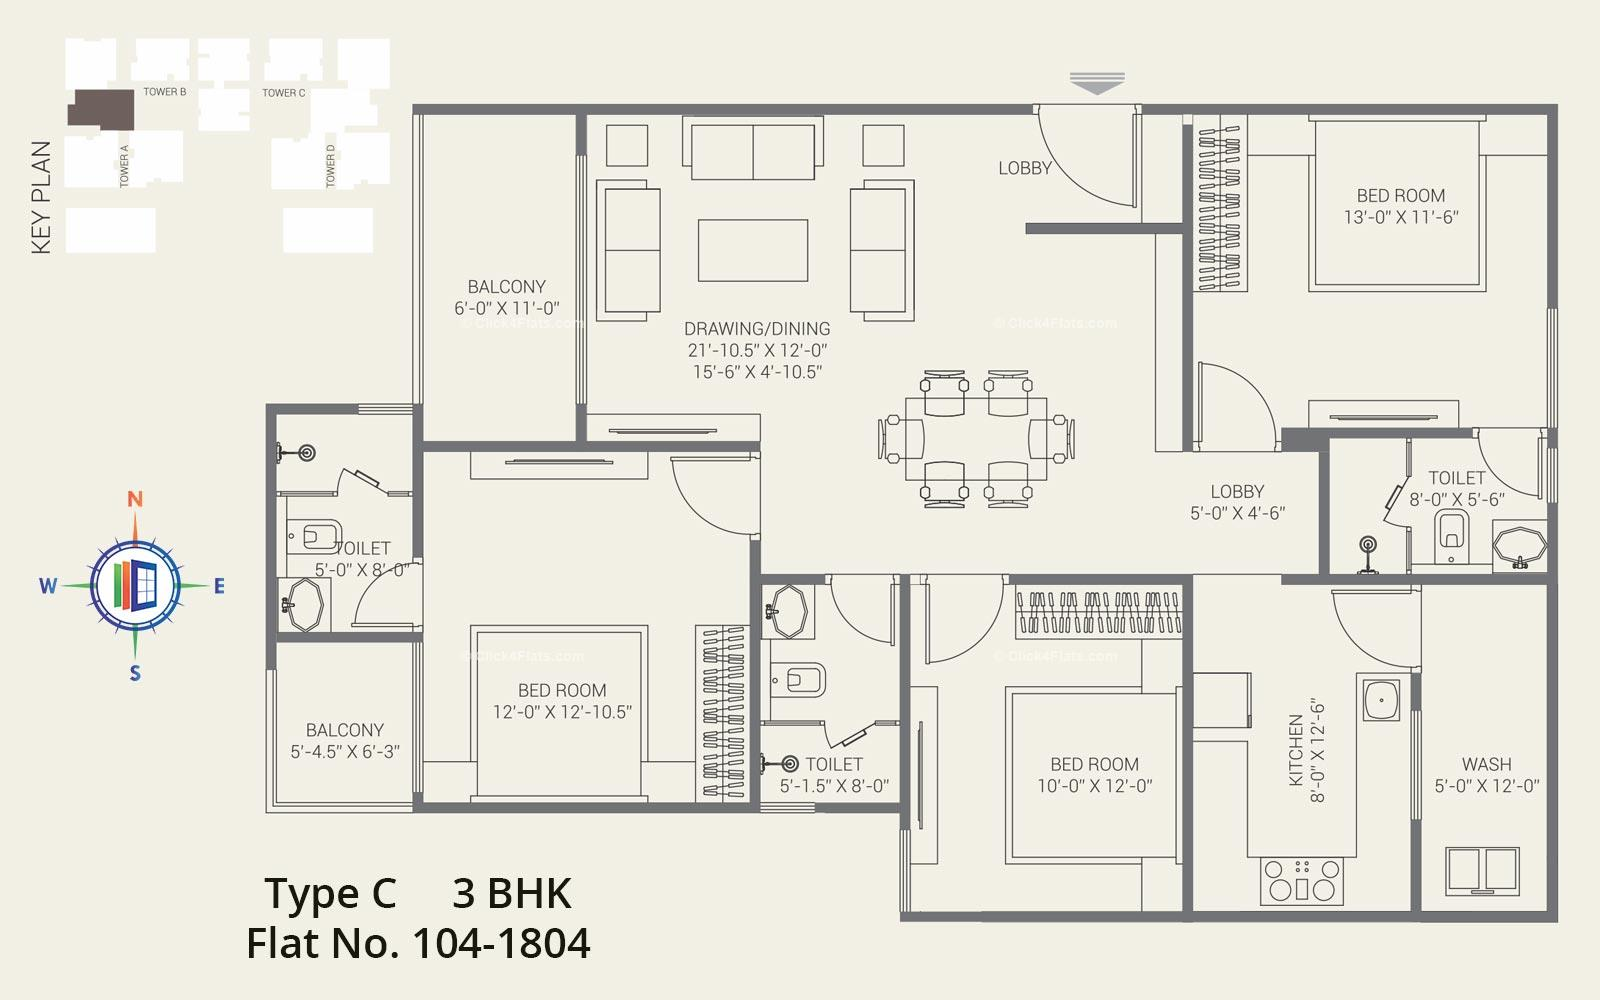 The Crown 3 BHK